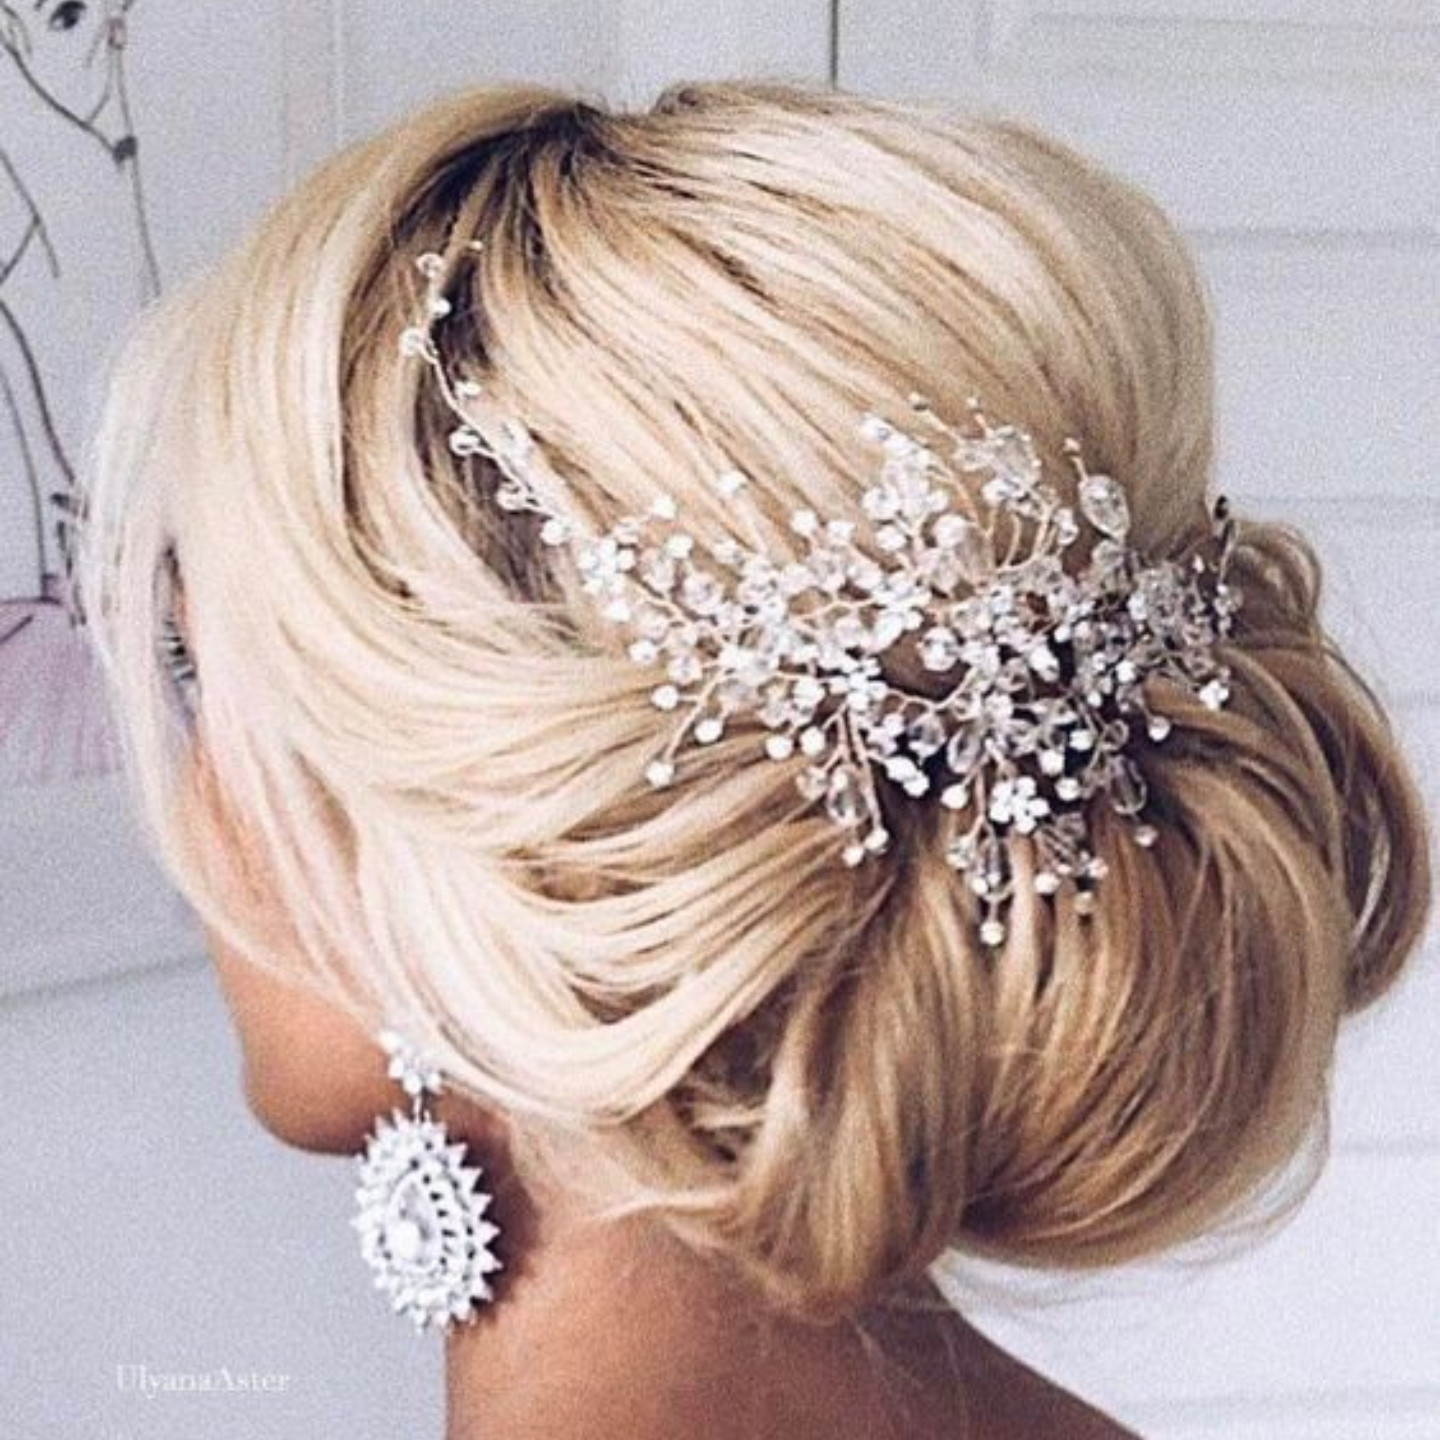 va_va_boom_hair_extenions_hair_topper_wedding_hair_extensions_charlene_parchment_la_belles_west_midlands